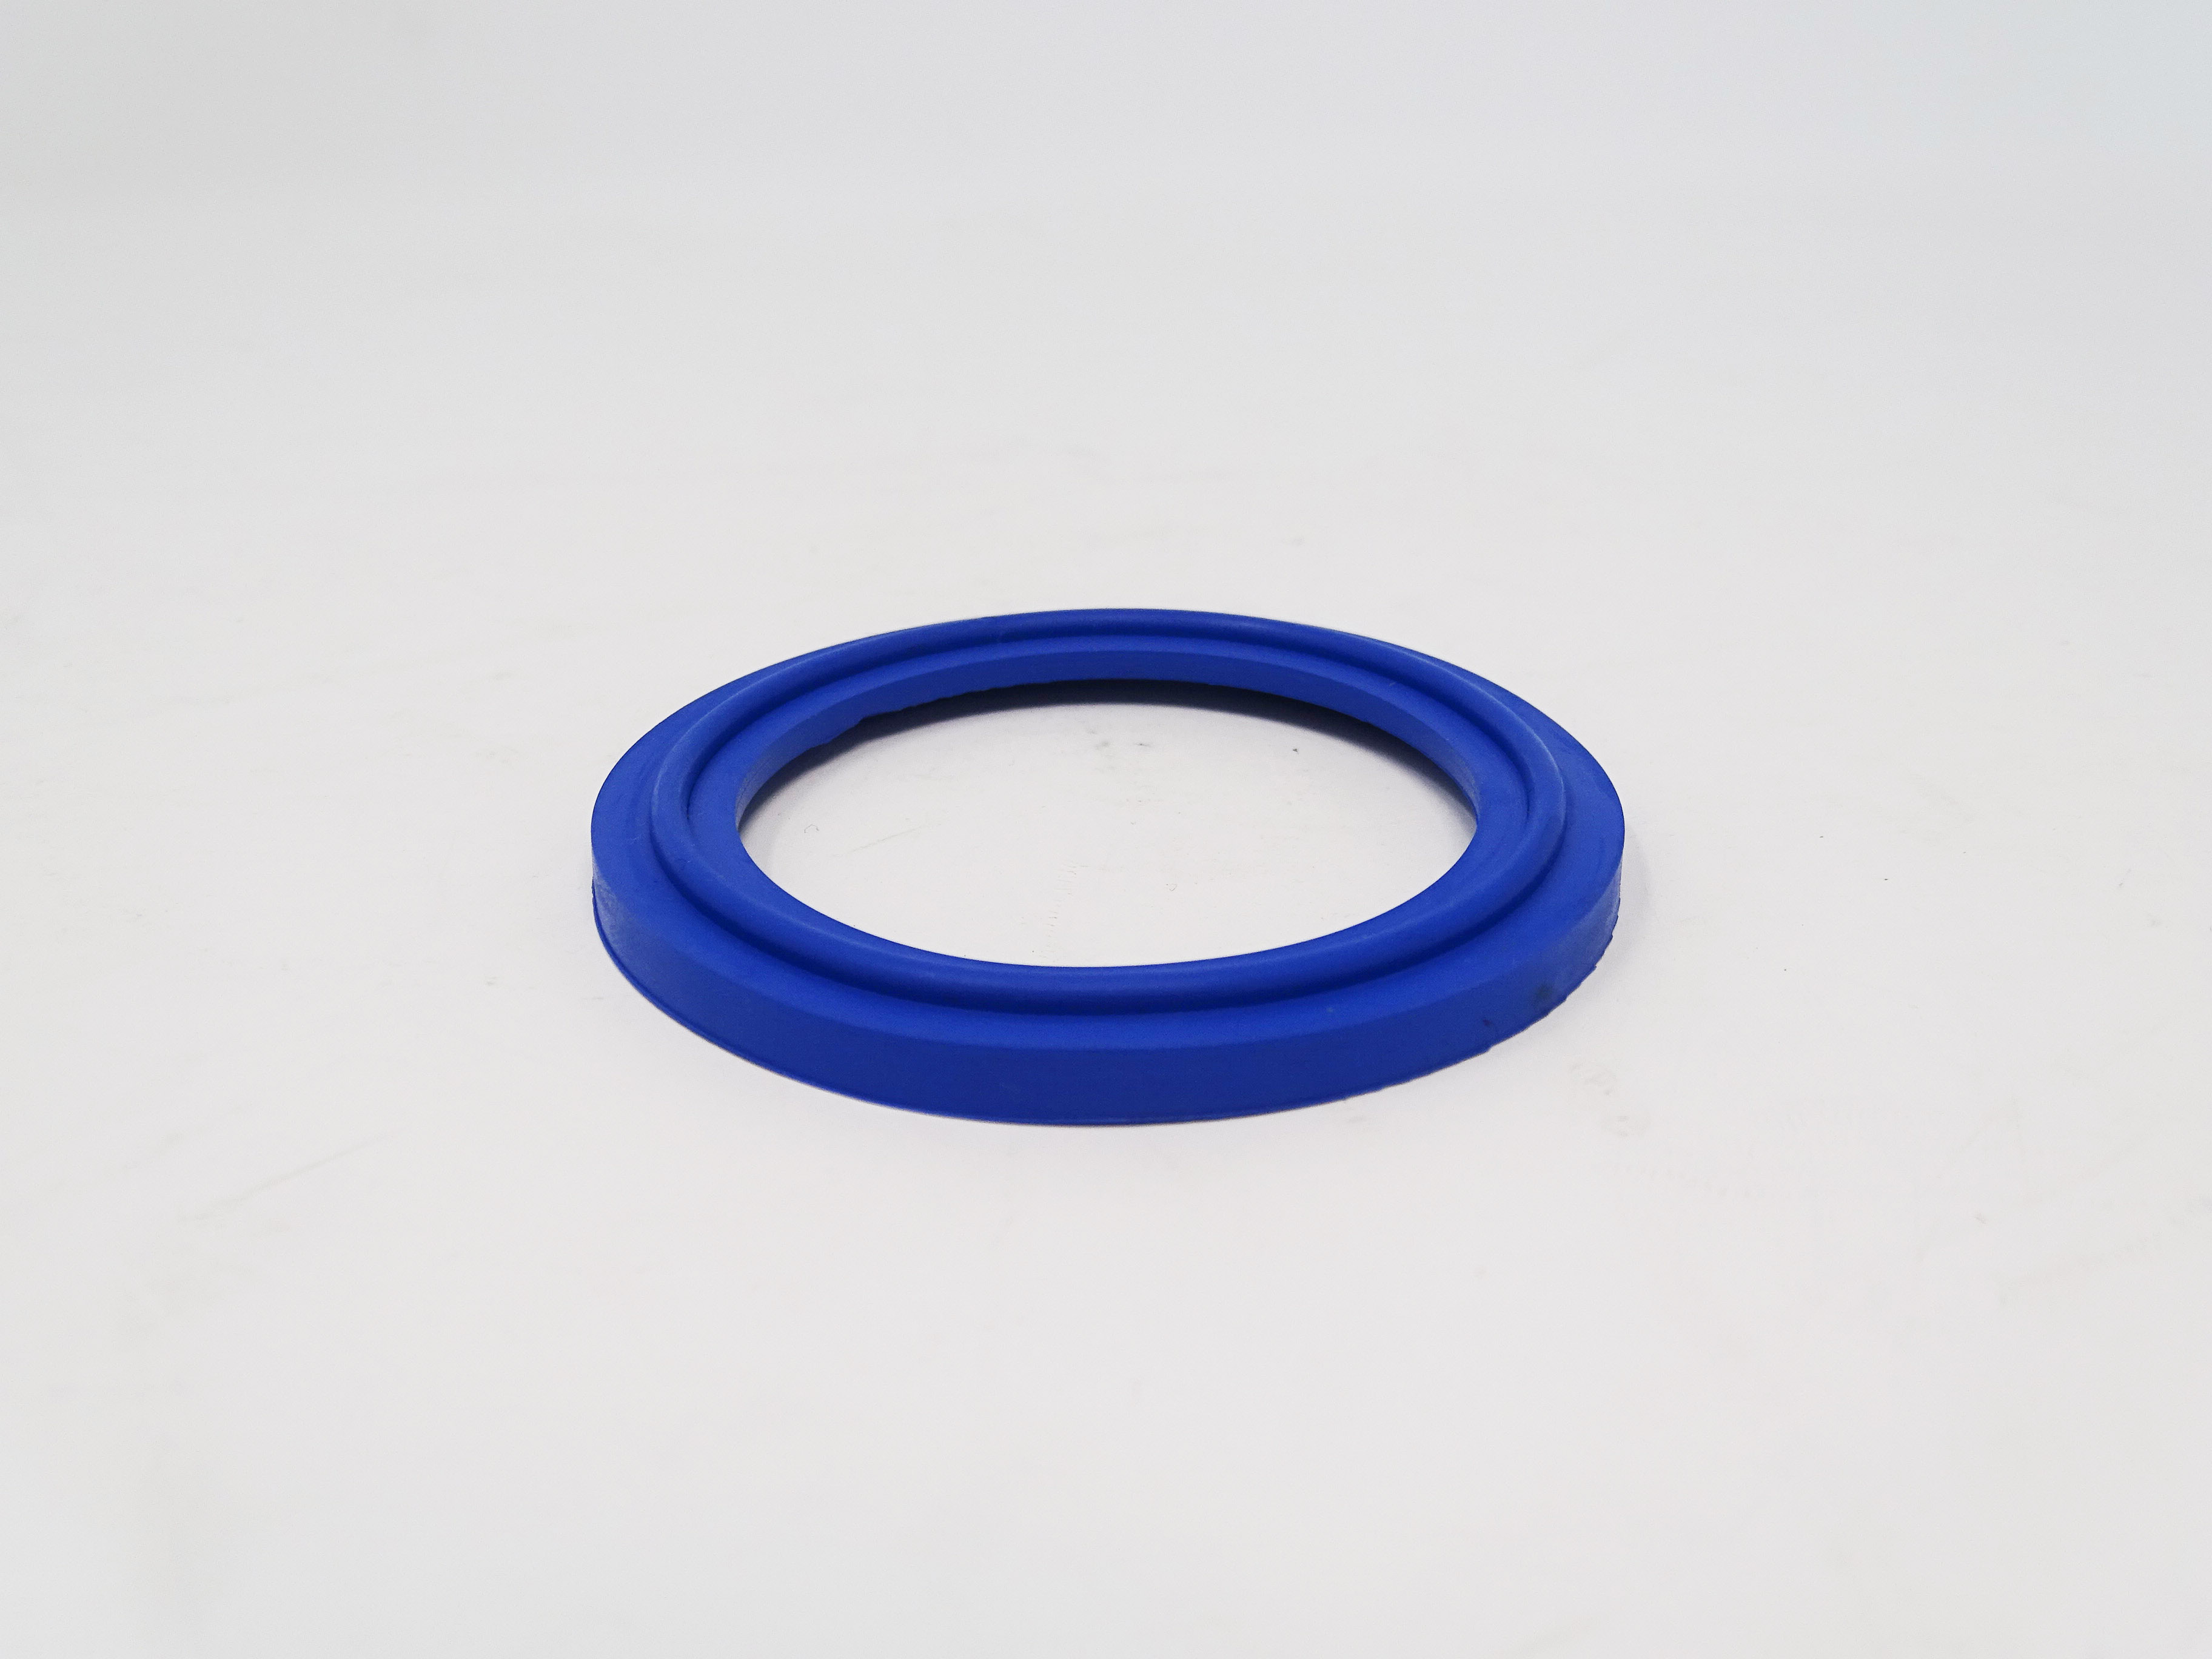 2 Inch Clamp Fitting Seal (Blue)